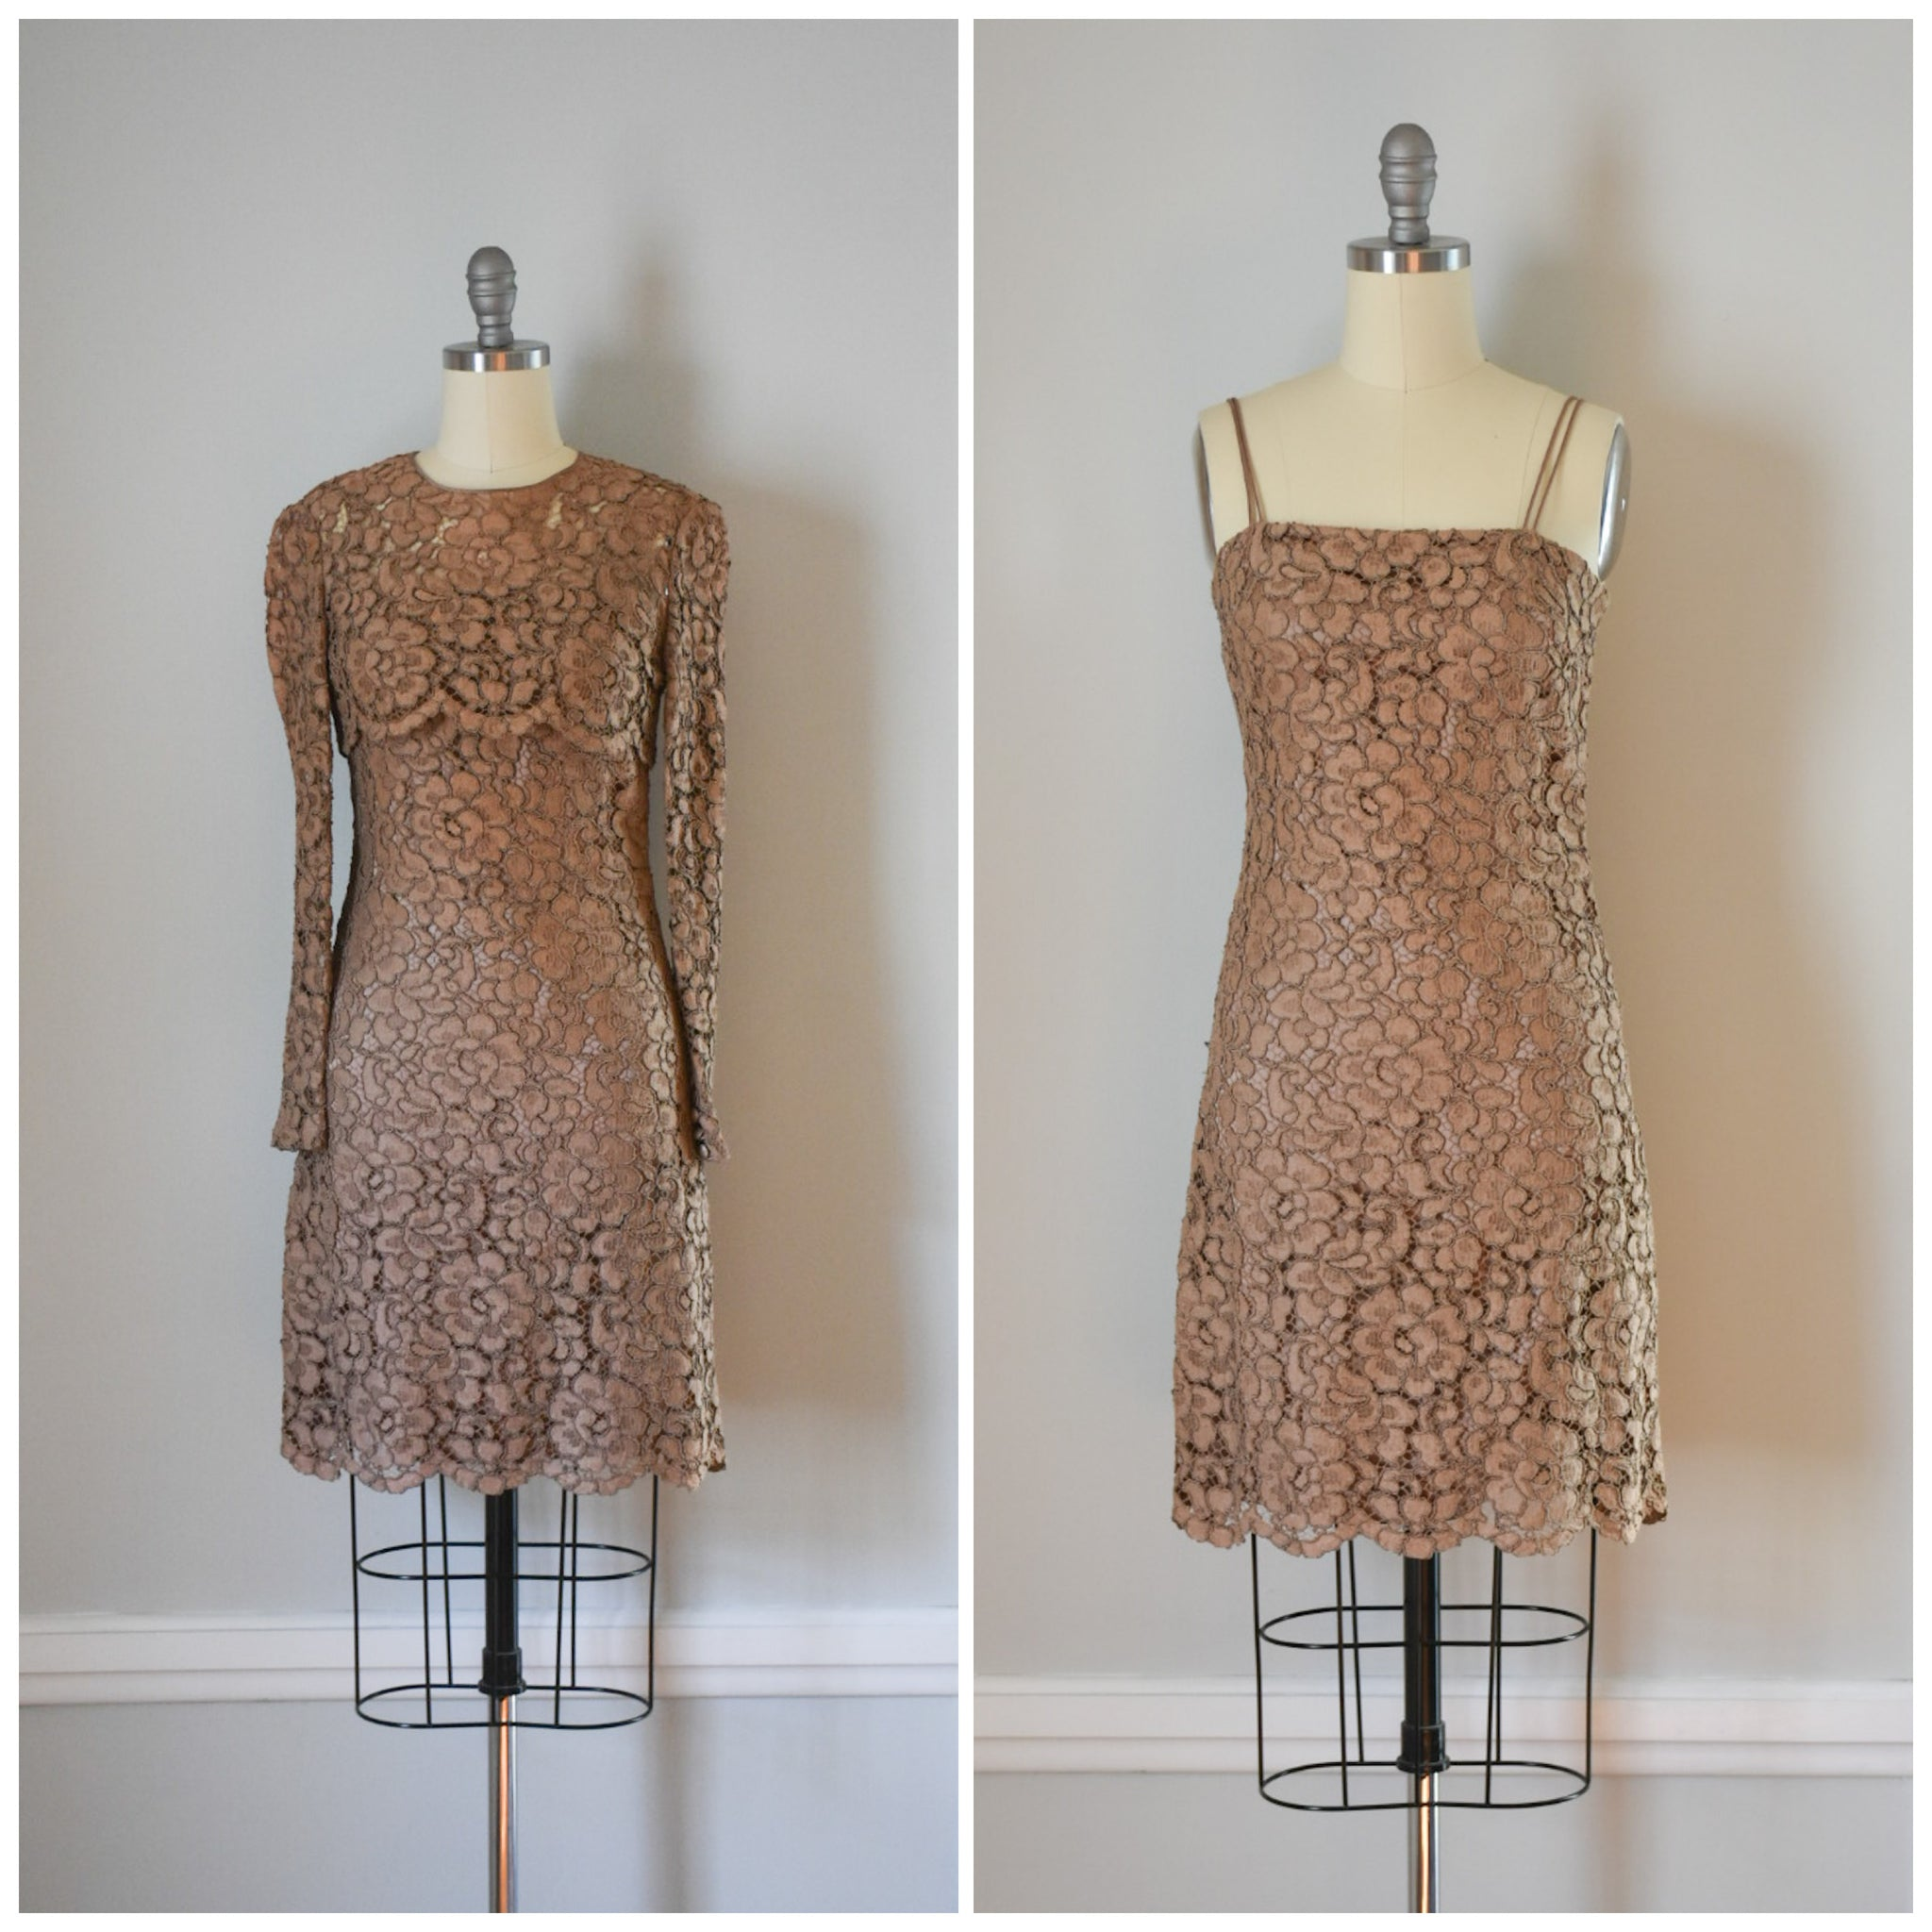 60s / 70s Lace Mini Dress and Bolero from DuncanLovesTess.com